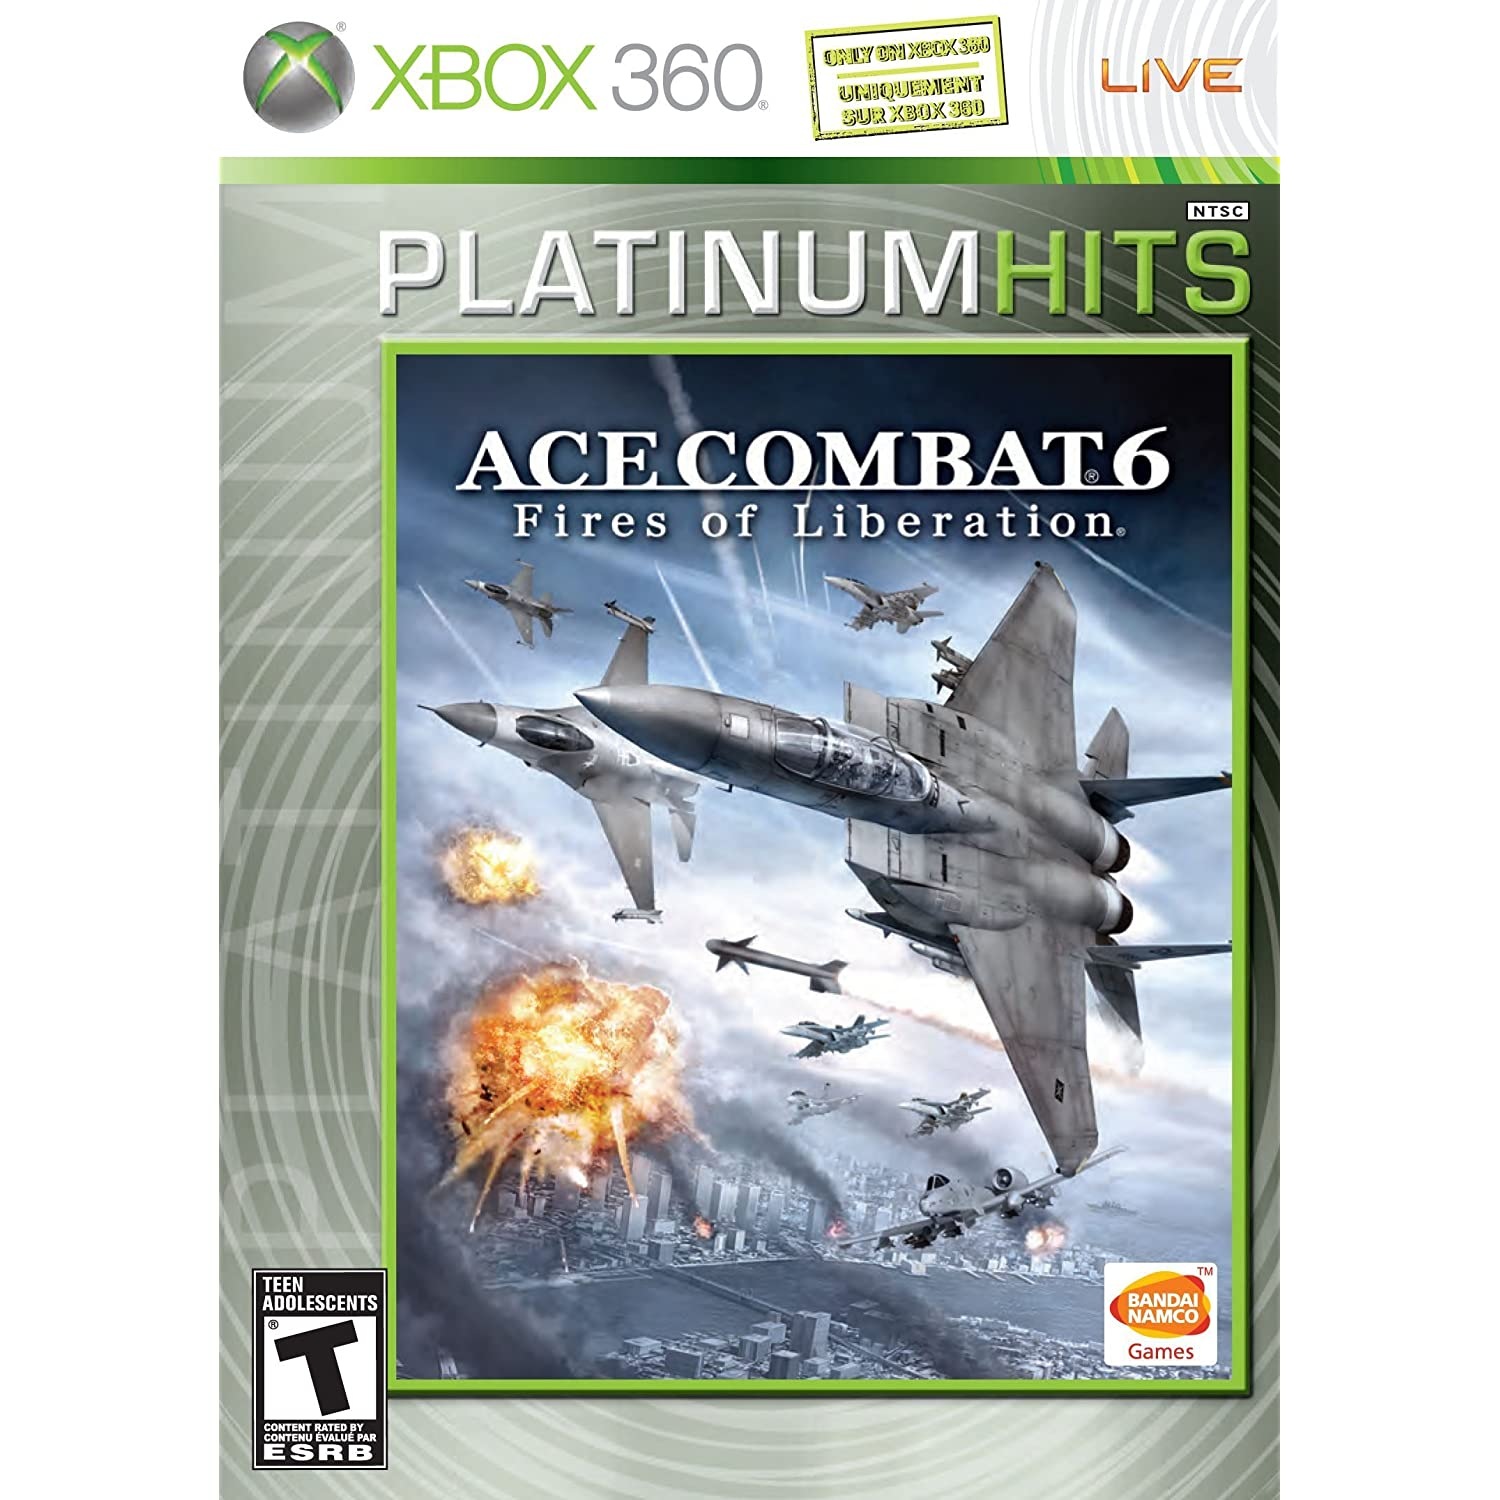 Online Game, Online Games, Video Game, Video Games, xbox 360, flight simulator, flying, ace combat, flight sim, military, simulator, Ace Combat 6: Fires of Liberation